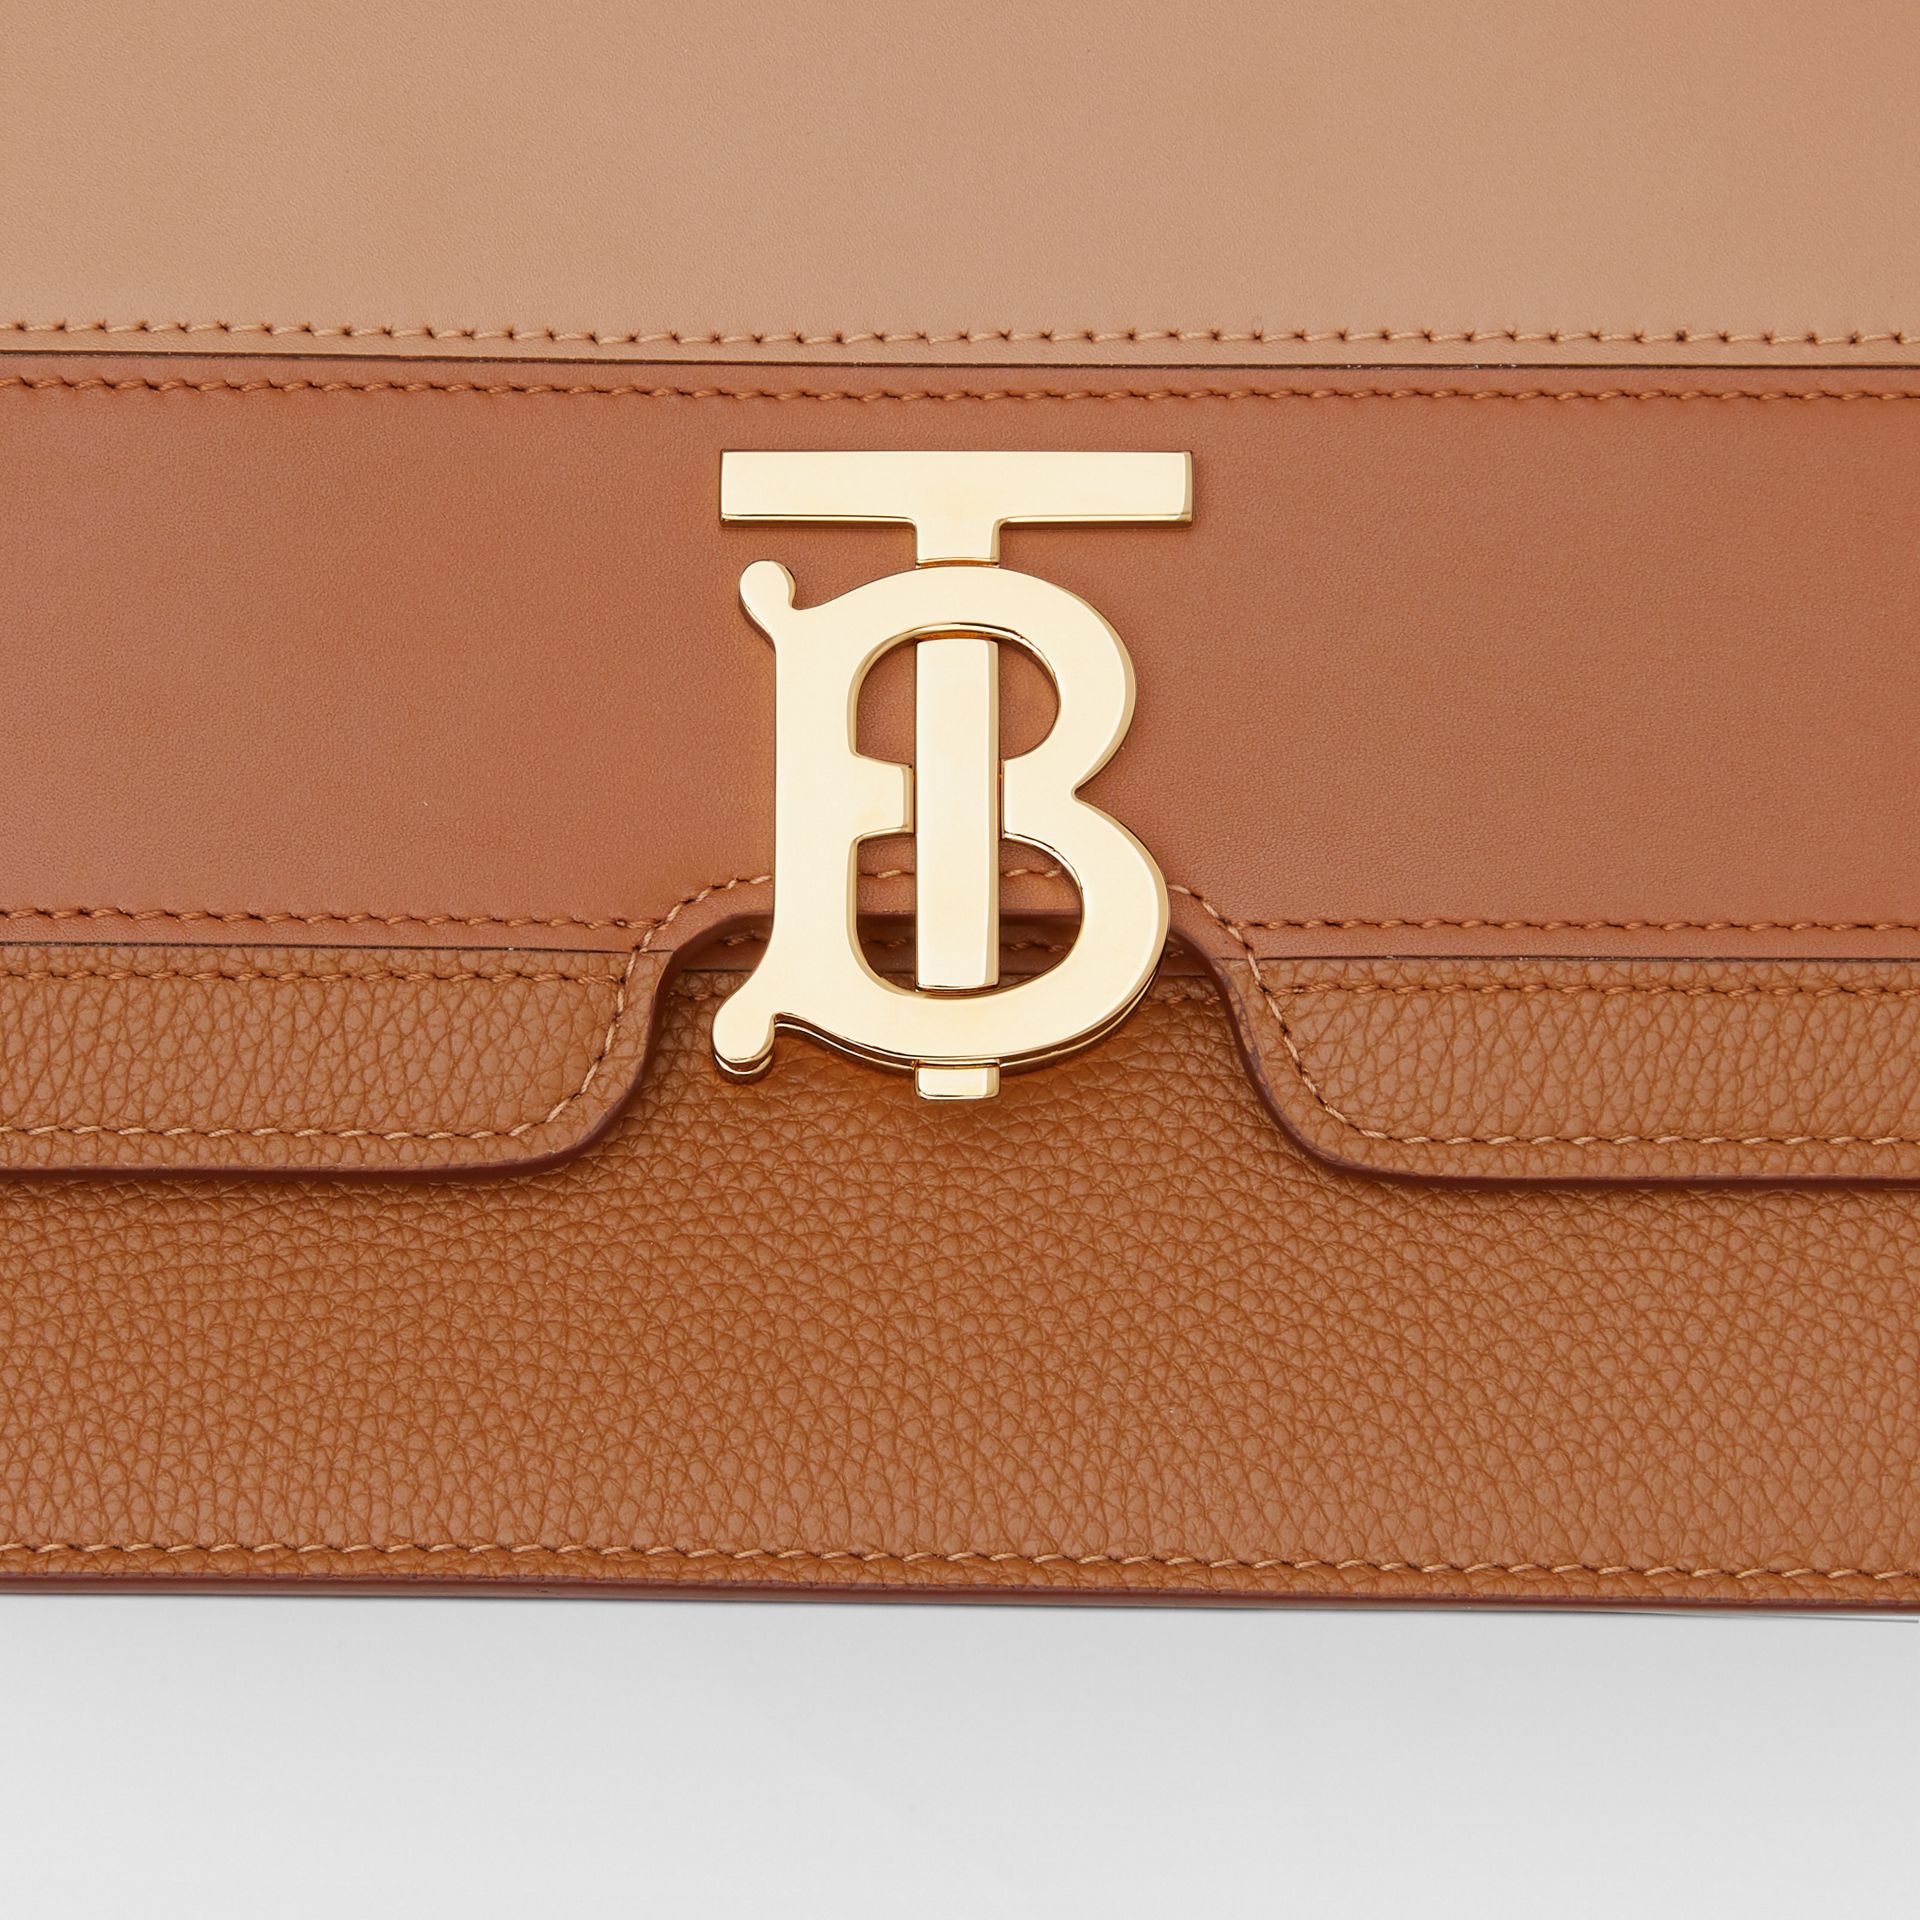 Medium Panelled Leather TB Bag in Maple - Women | Burberry - gallery image 1